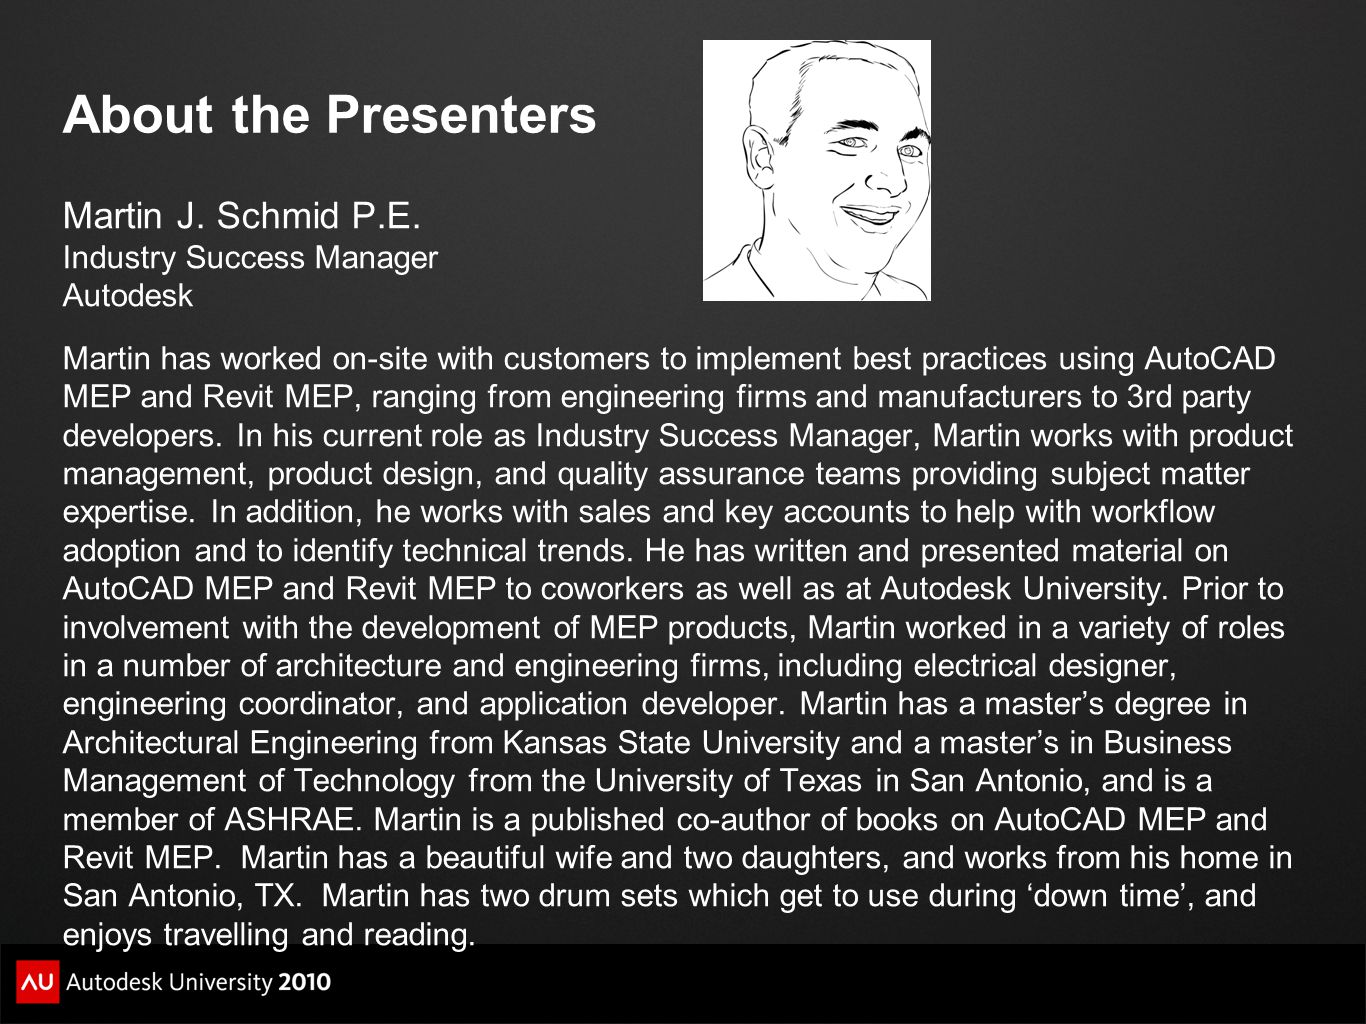 About the Presenters Martin J. Schmid P.E. Industry Success Manager